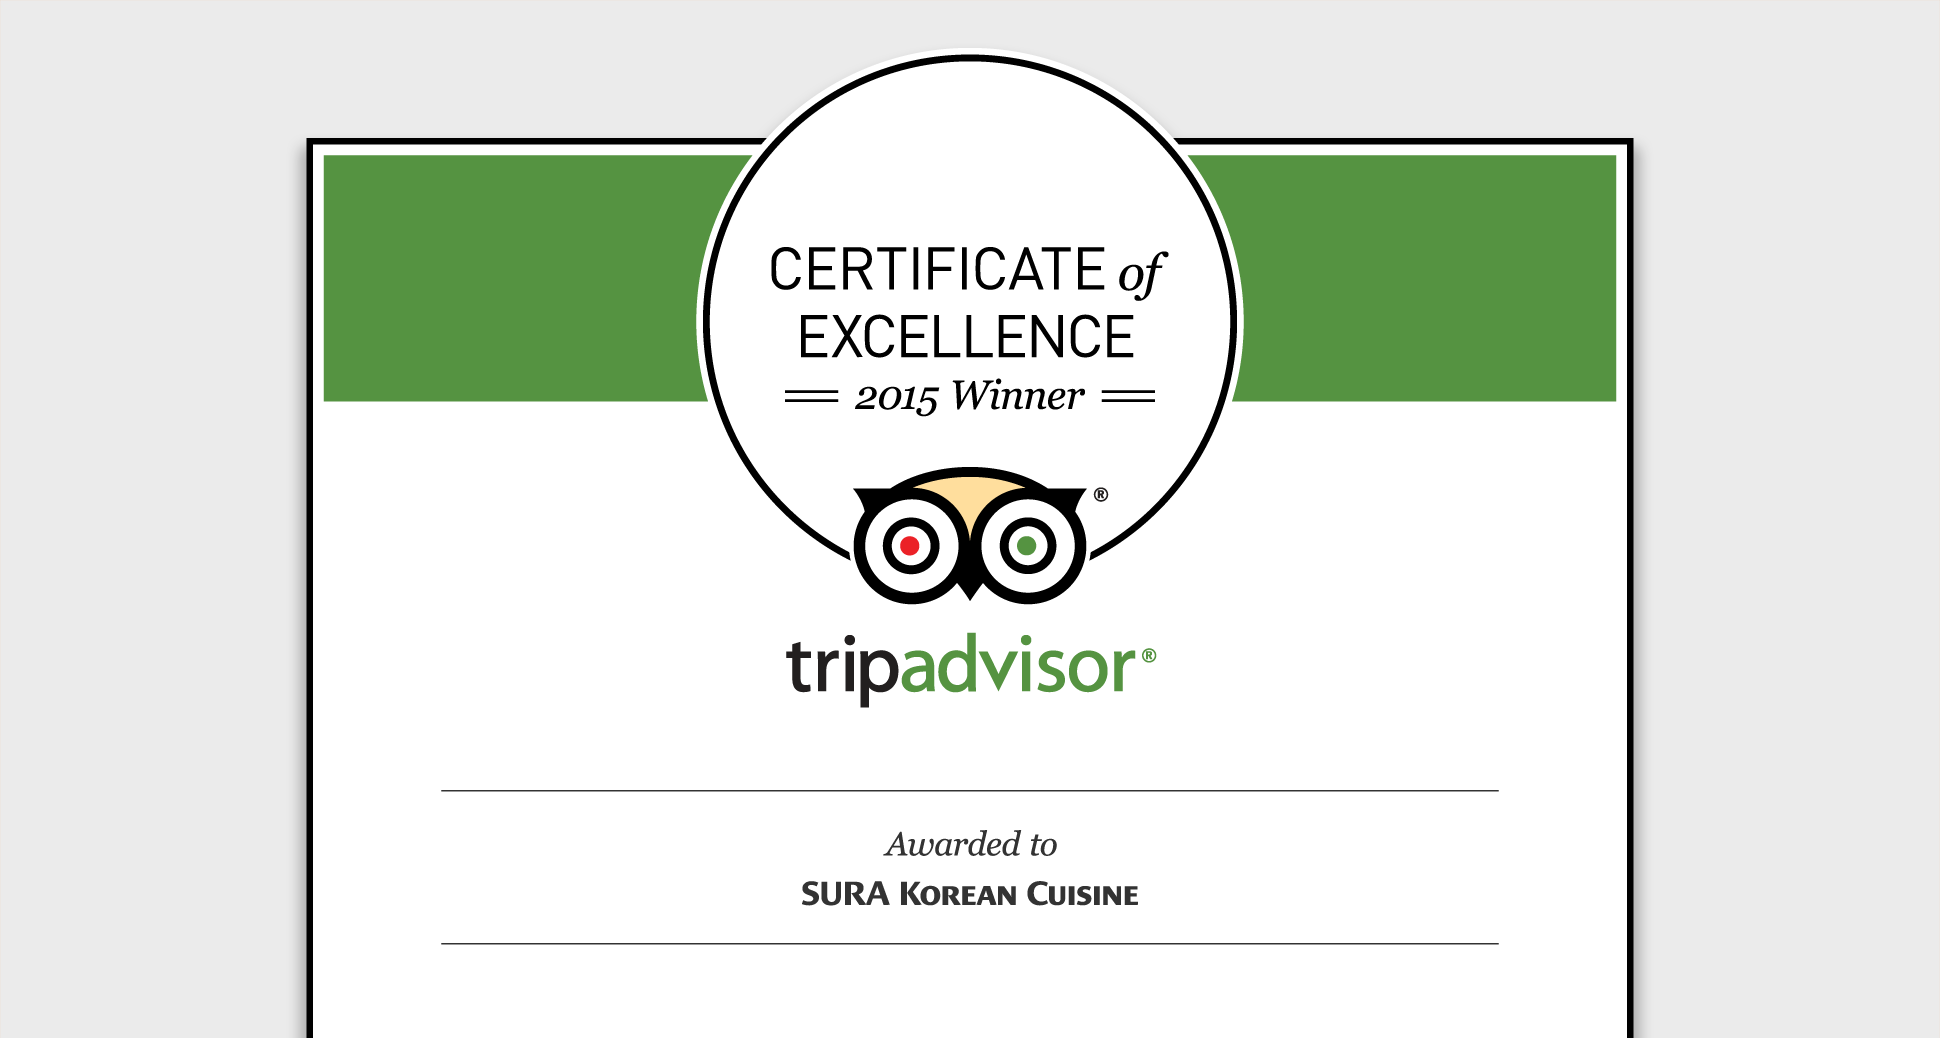 SURA has received the 2015 TripAdvisor® Certificate of Excellence